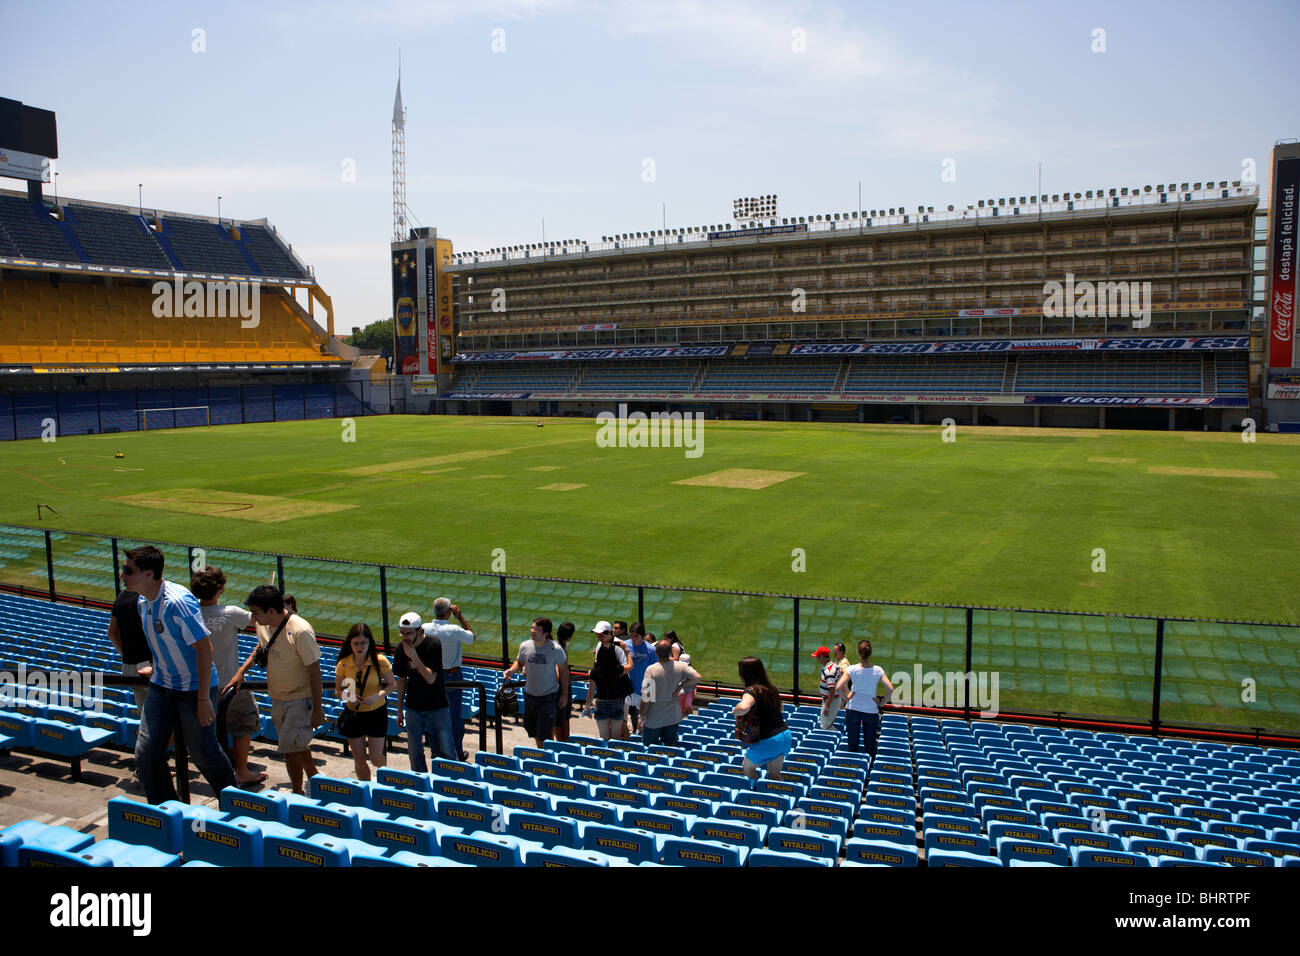 tourists on stadium tour of the interior of Alberto J Armando la bombonera stadium home to atletico boca juniors - Stock Image